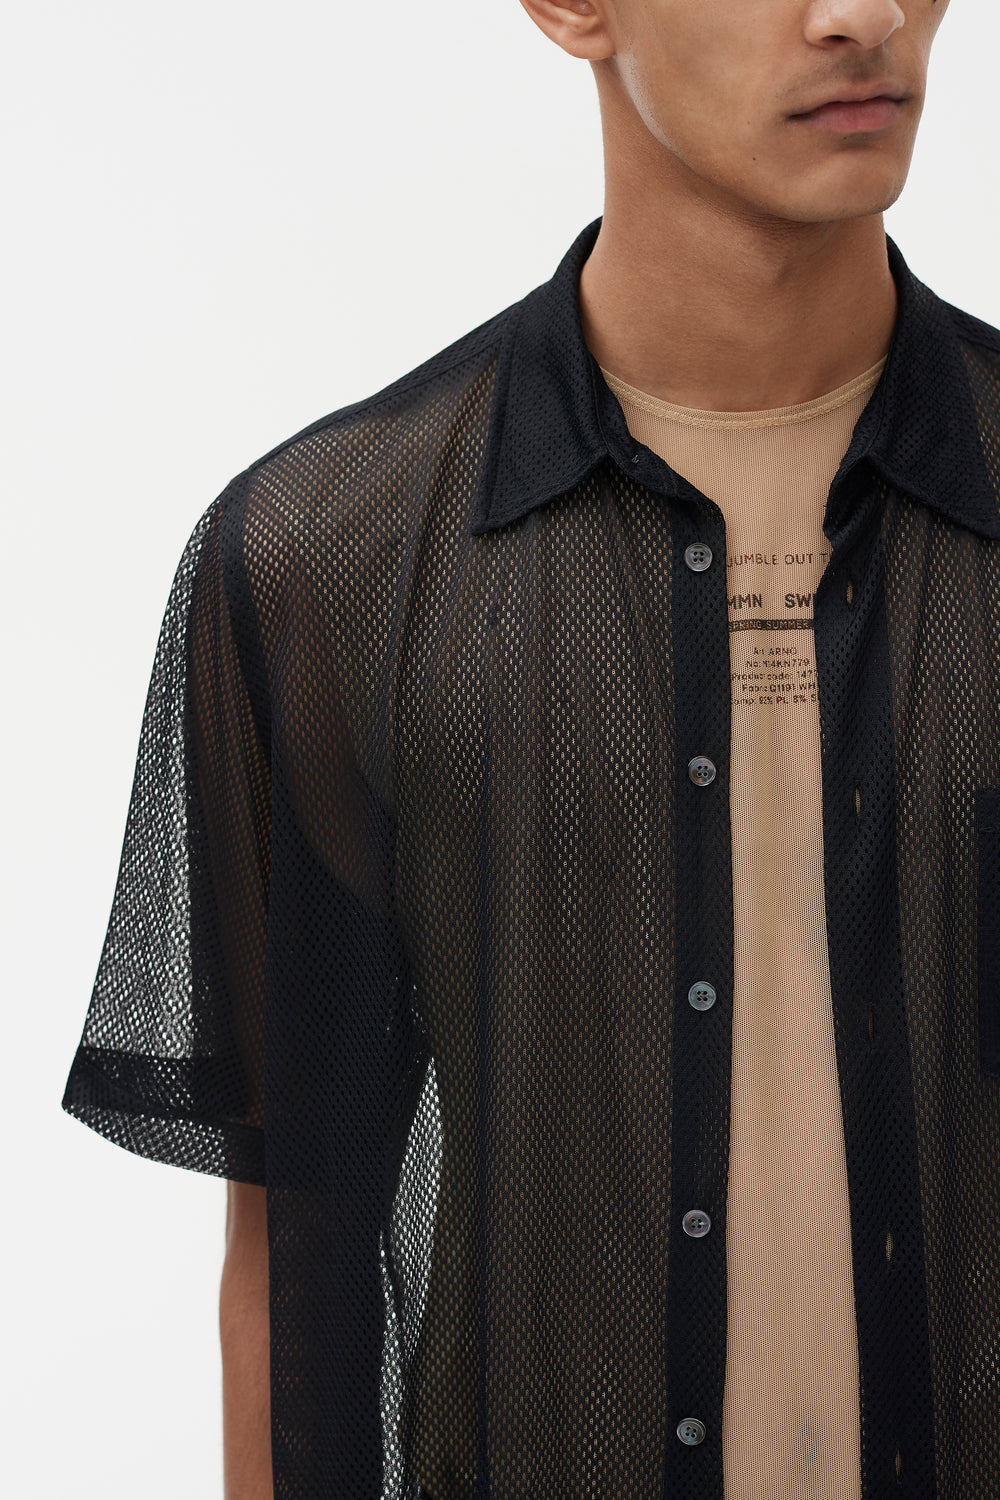 Niels short Sleeve Mesh Shirt Black